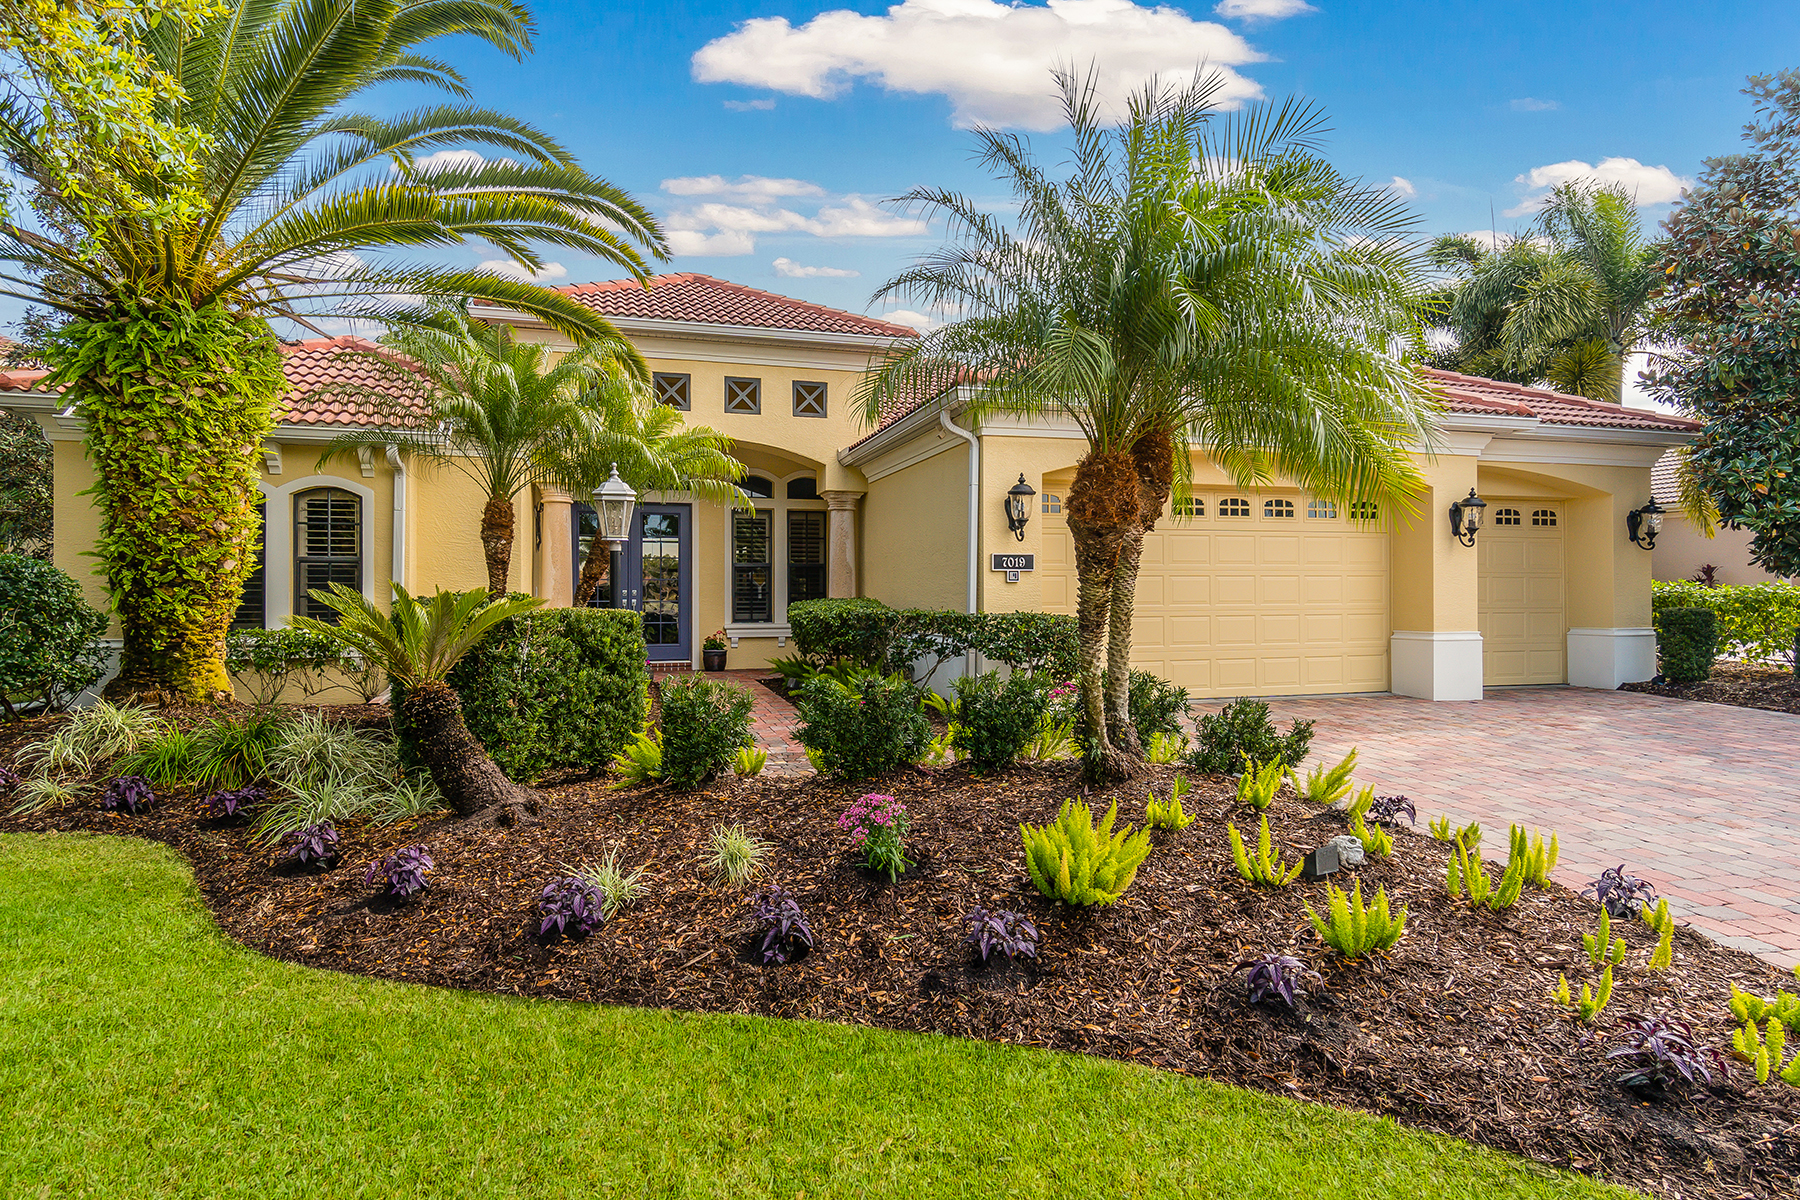 Single Family Home for Sale at LAKEWOOD COUNTRY CLUB VILLAGE 7019 Brier Creek Ct, Lakewood Ranch, Florida, 34202 United States